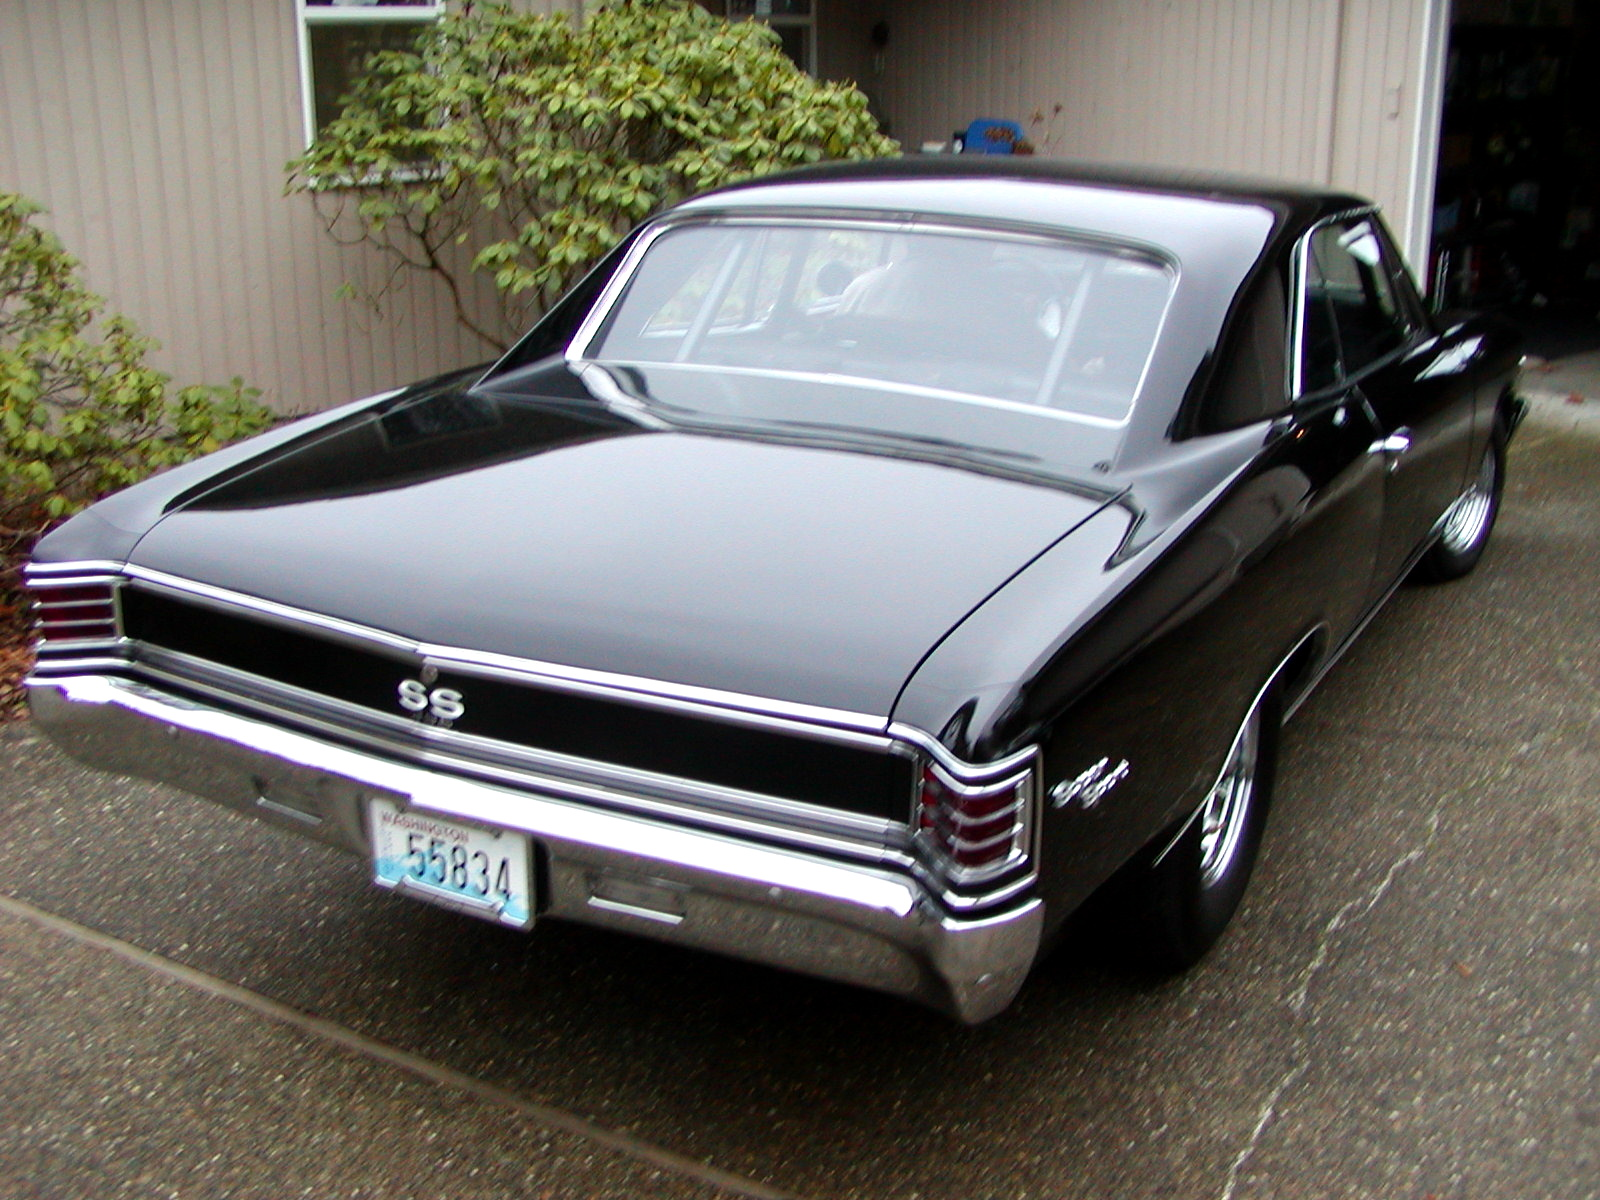 1967 Chevrolet Chevelle Information And Photos Momentcar